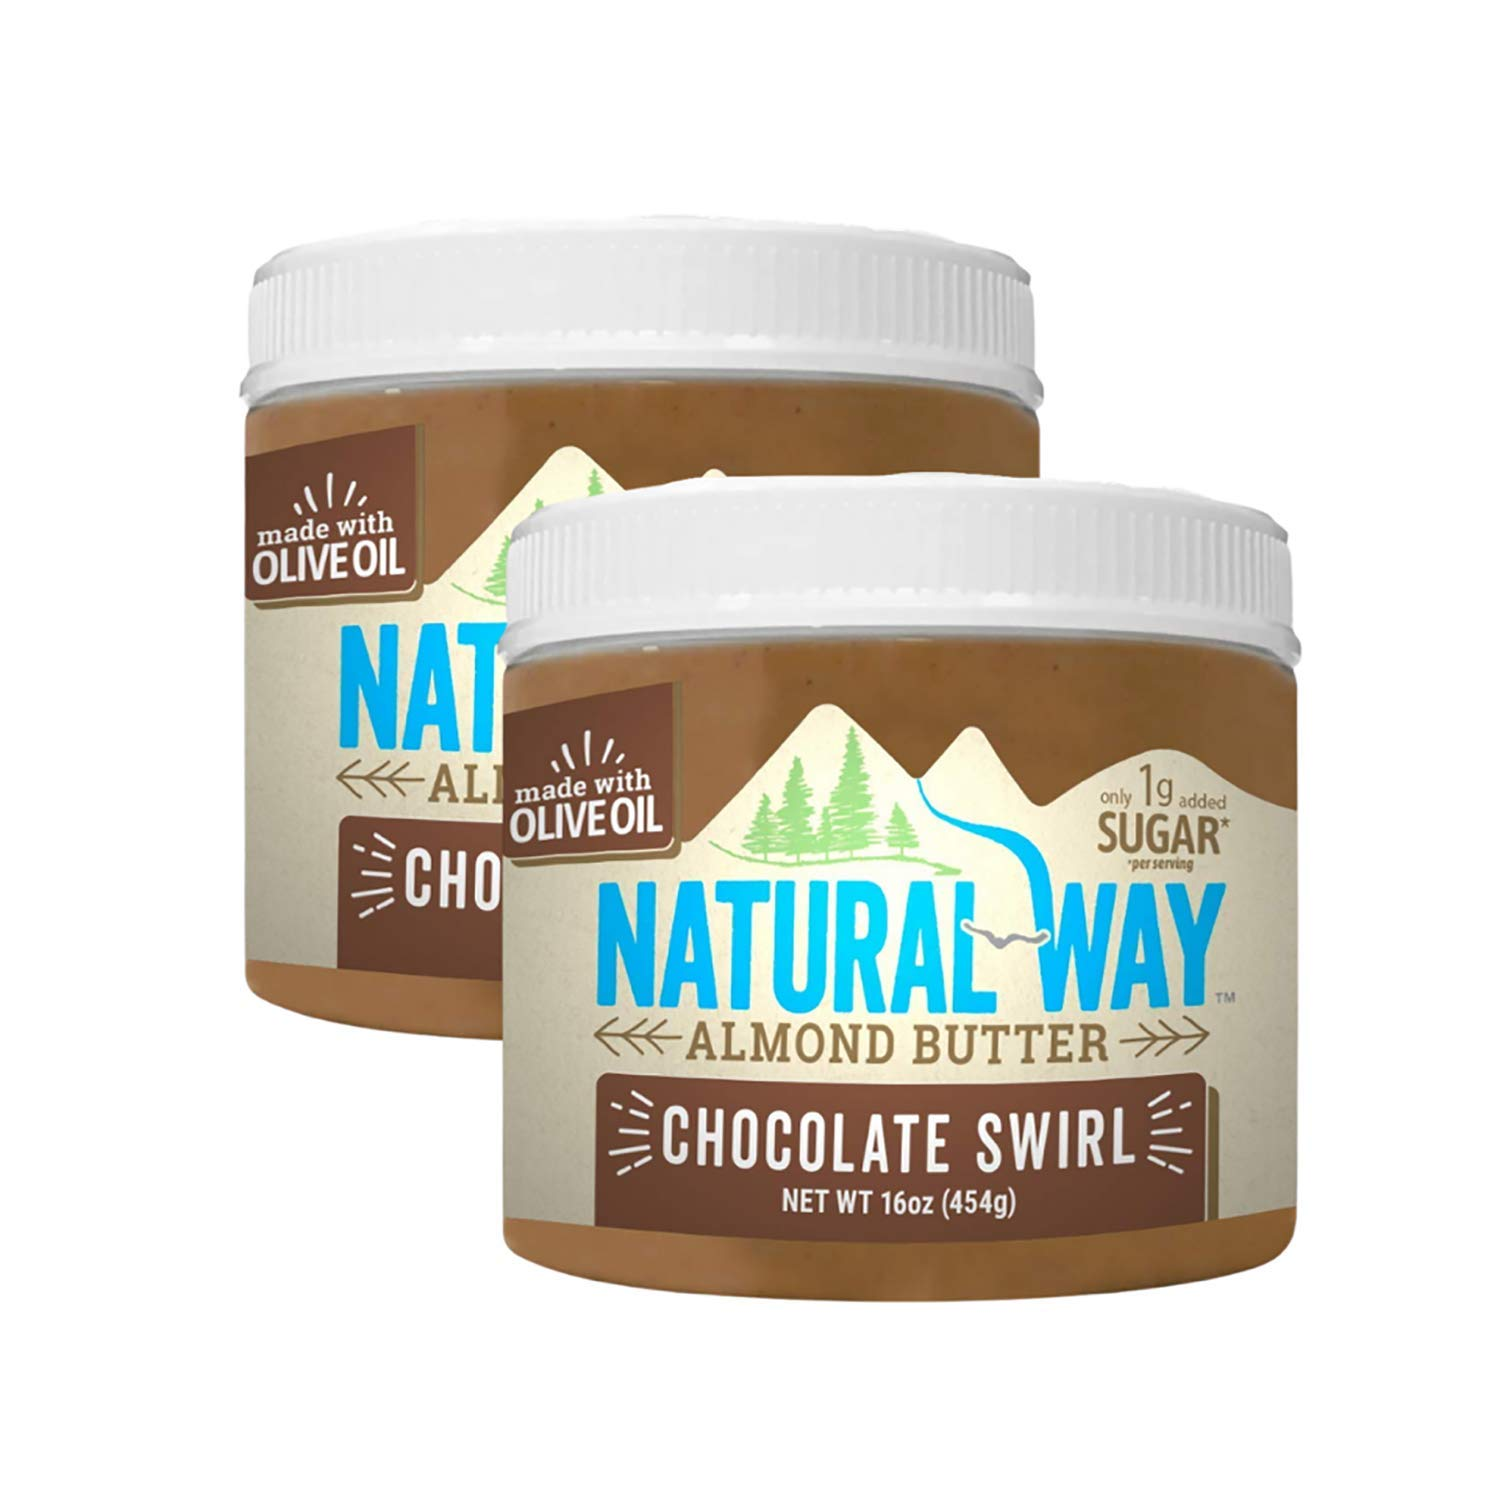 Natural Way Almond Butter, Chocolate, 2-Pack, 16 Ounce Jars - With Olive Oil